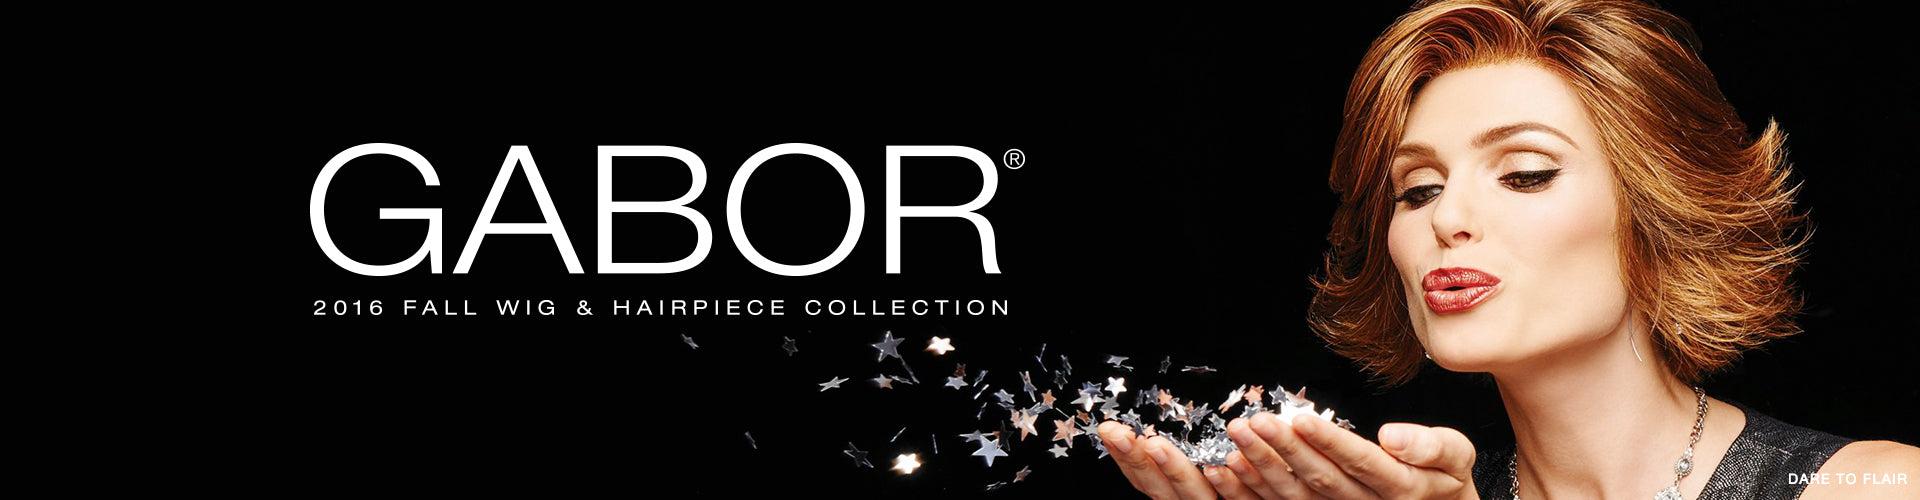 The Gabor Fall 2016 Collection